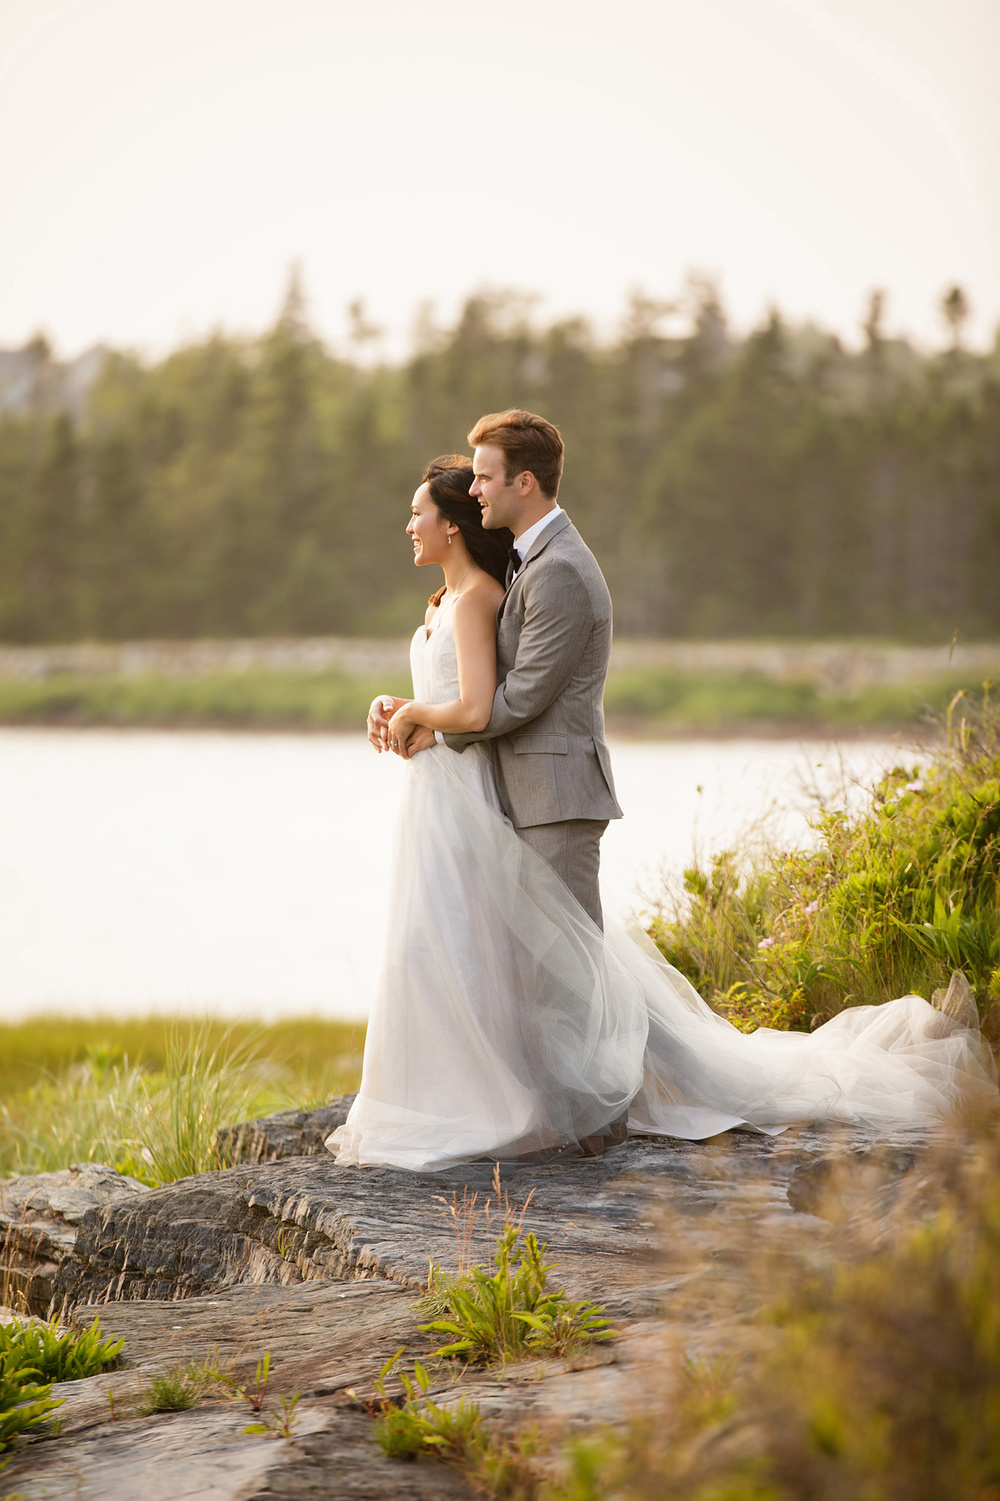 956-halifax-wedding-photographers---------.jpg